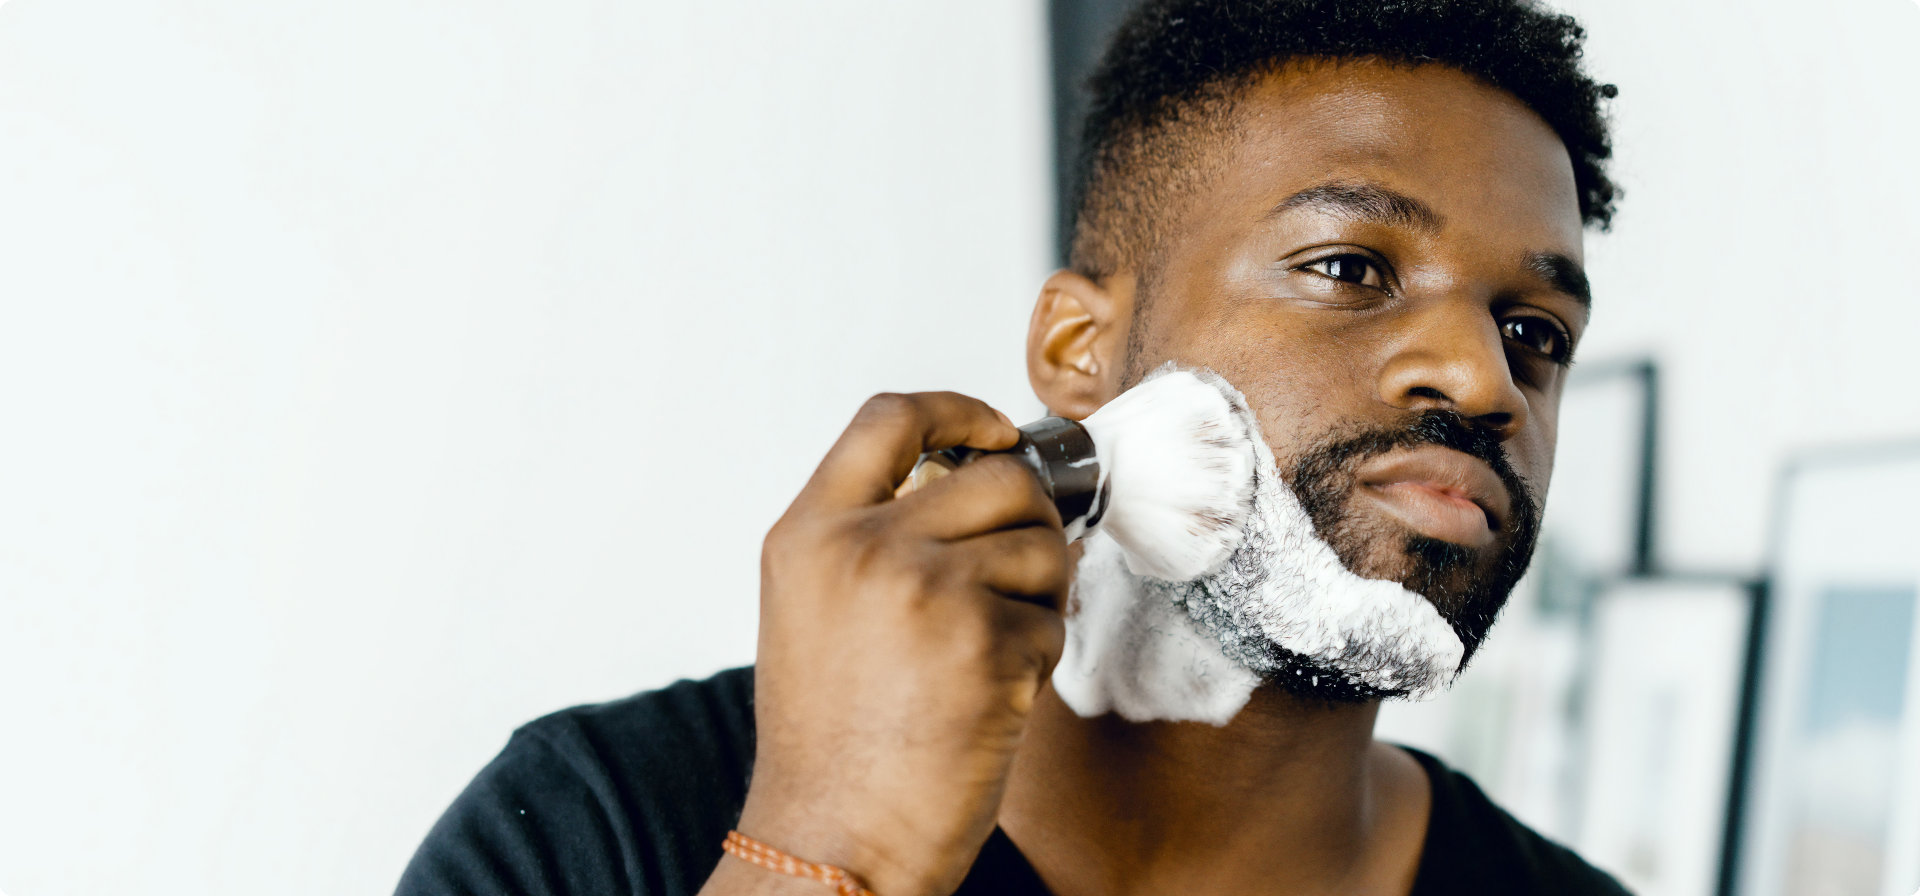 Men's Grooming: Advice for a best, better wet shaving soap experience